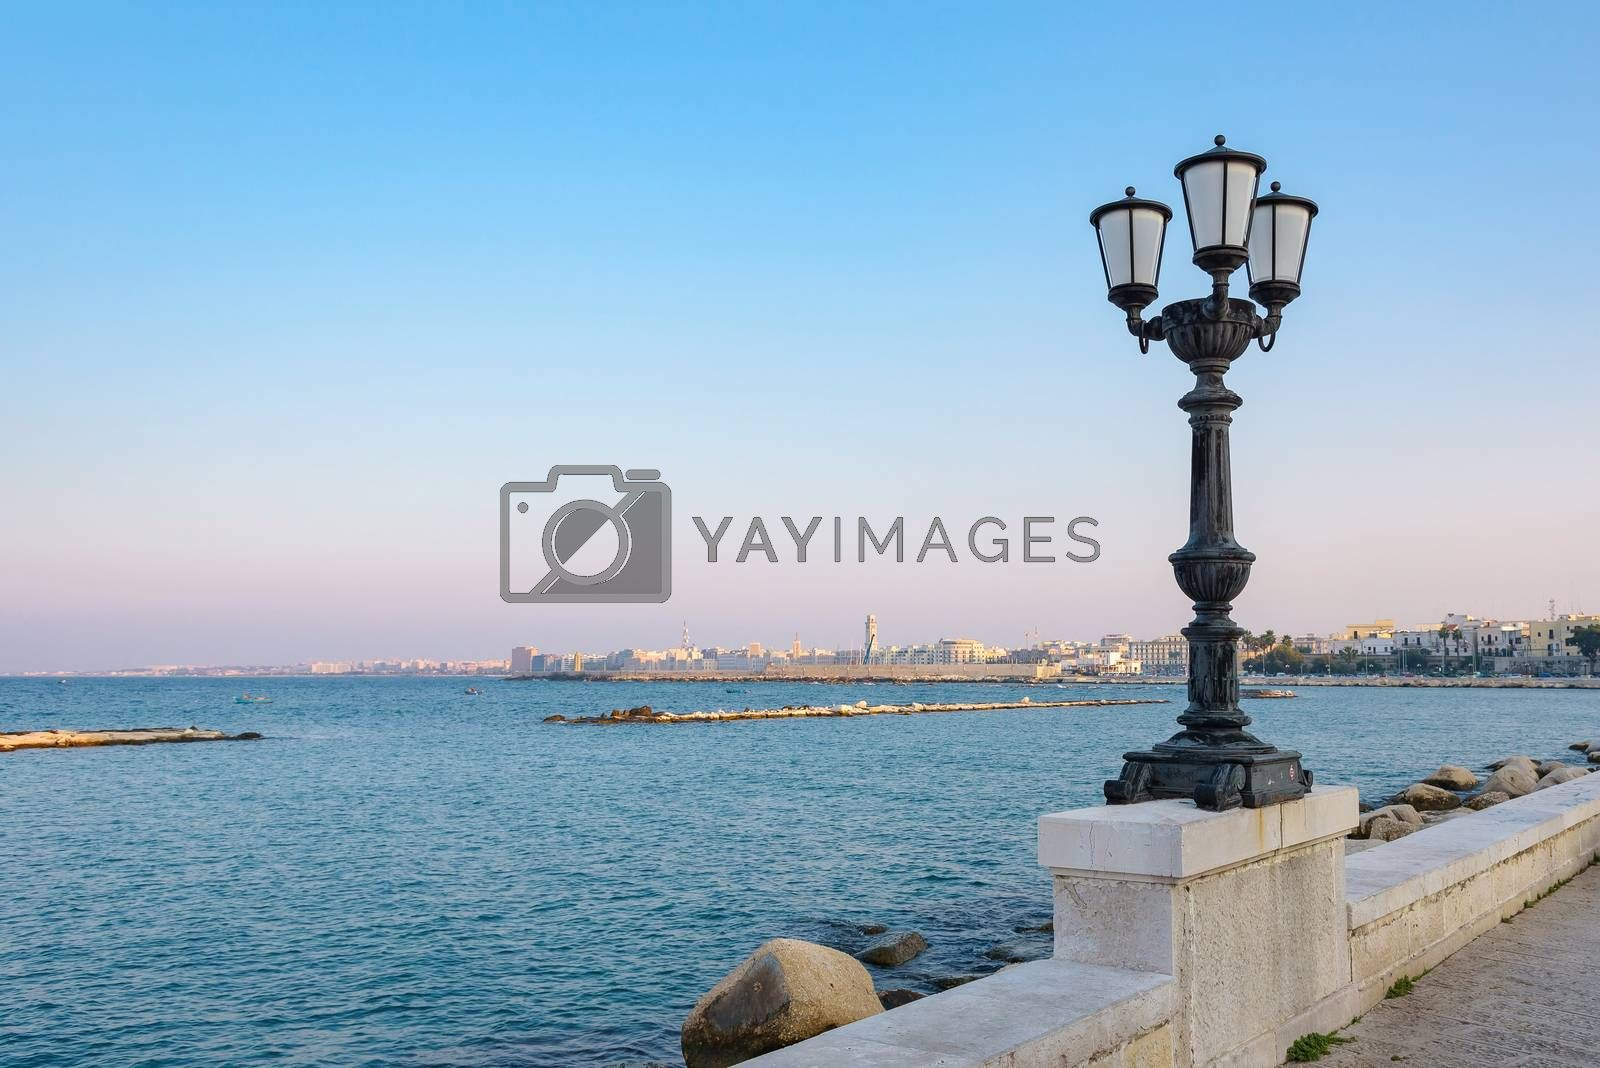 Afternoon view of seafront in Bari, Apulia, Italy